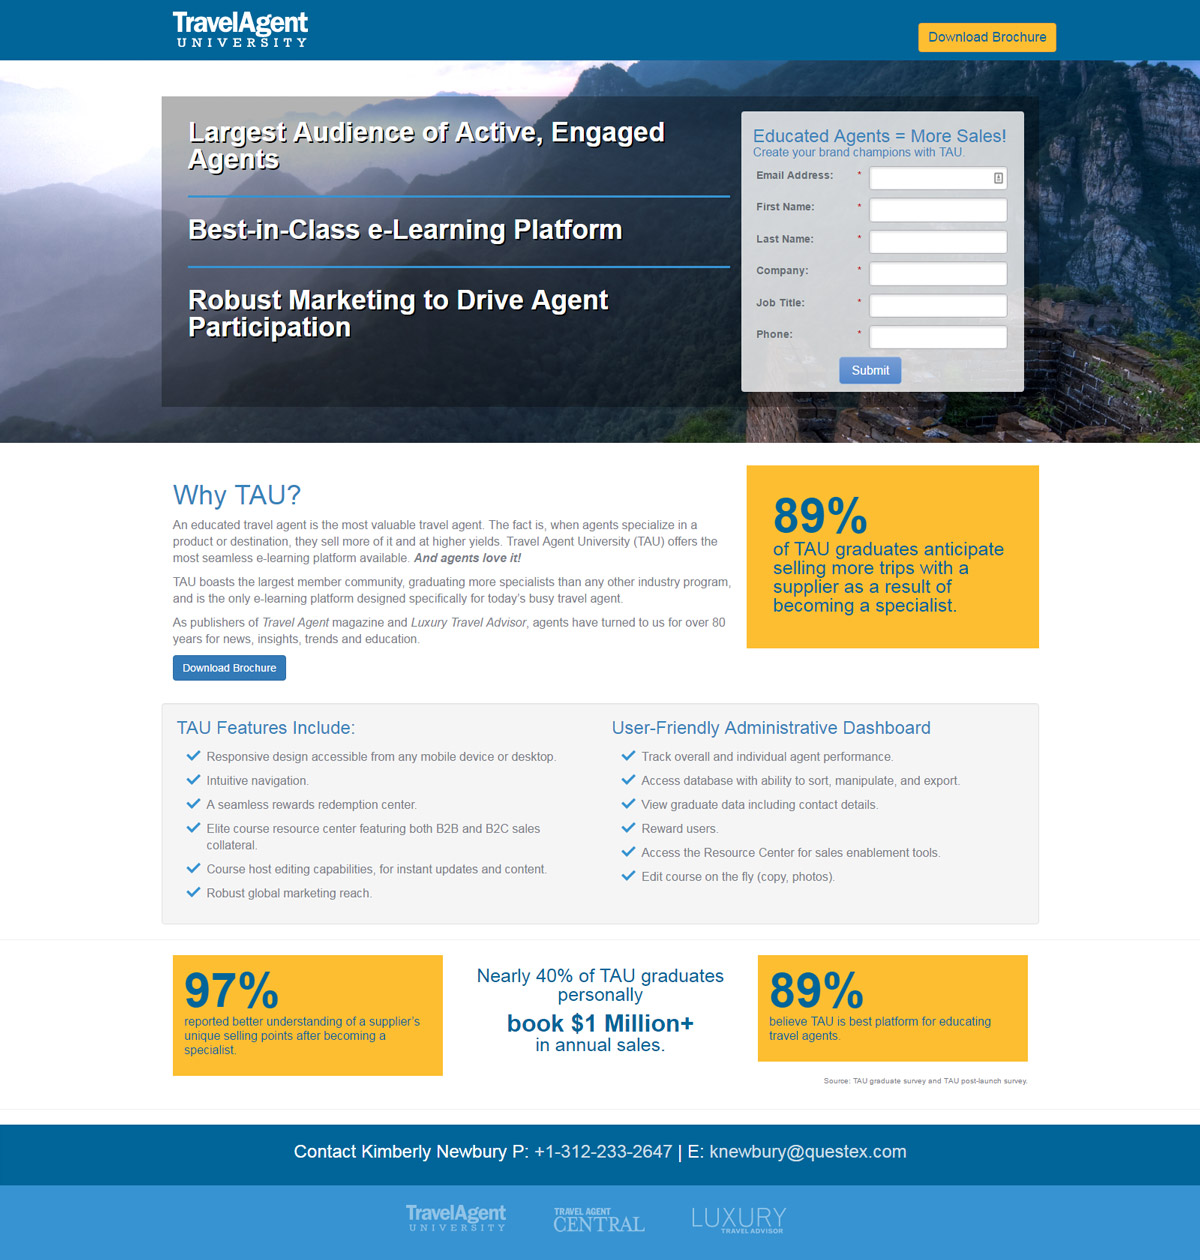 Travel Agent University Landing Page with Lead Generation